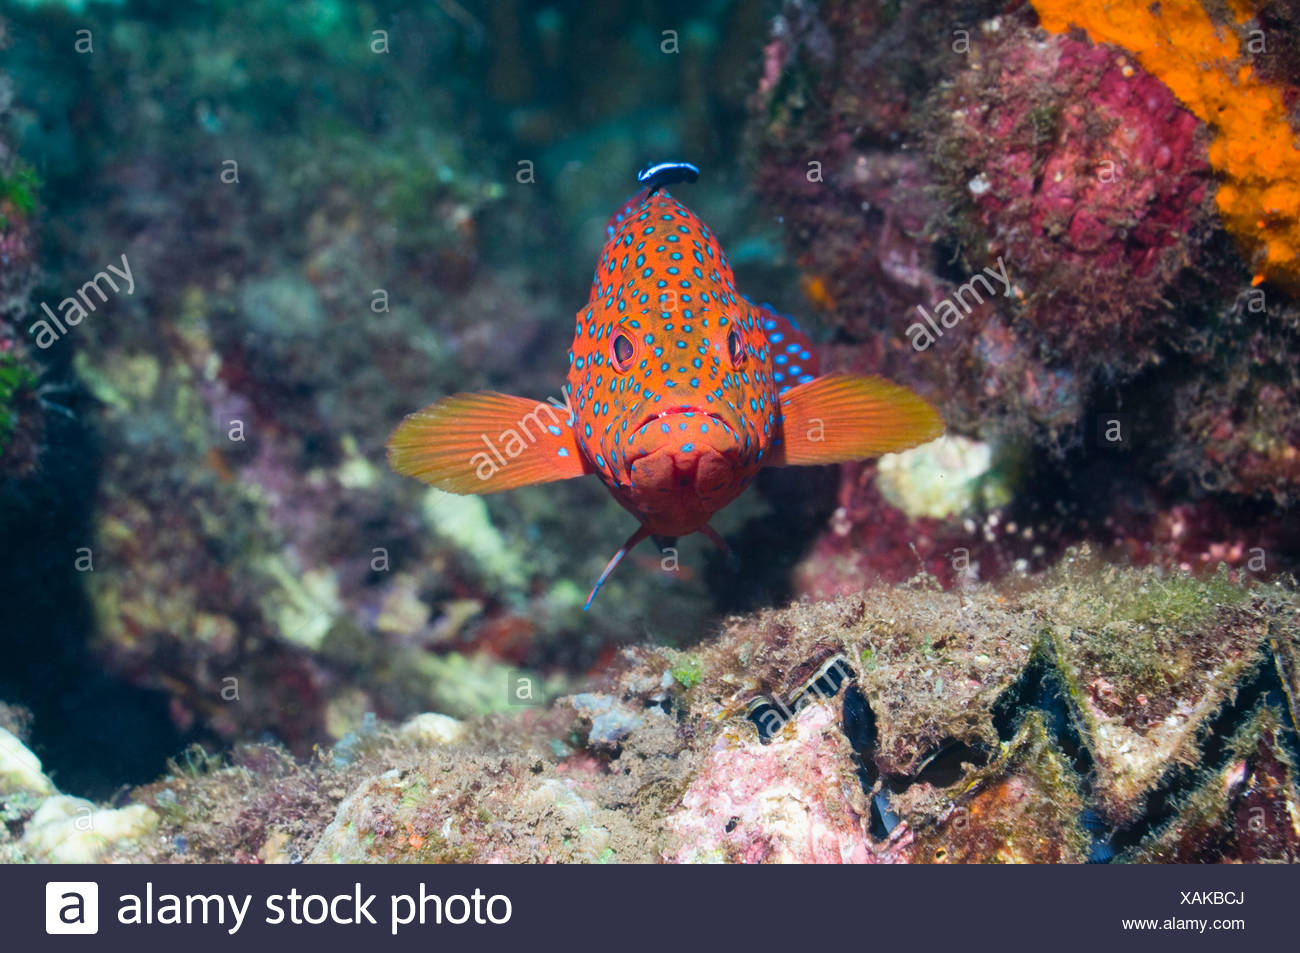 Coral hind with a Bluestreak cleaner, Solomon Islands. - Stock Image